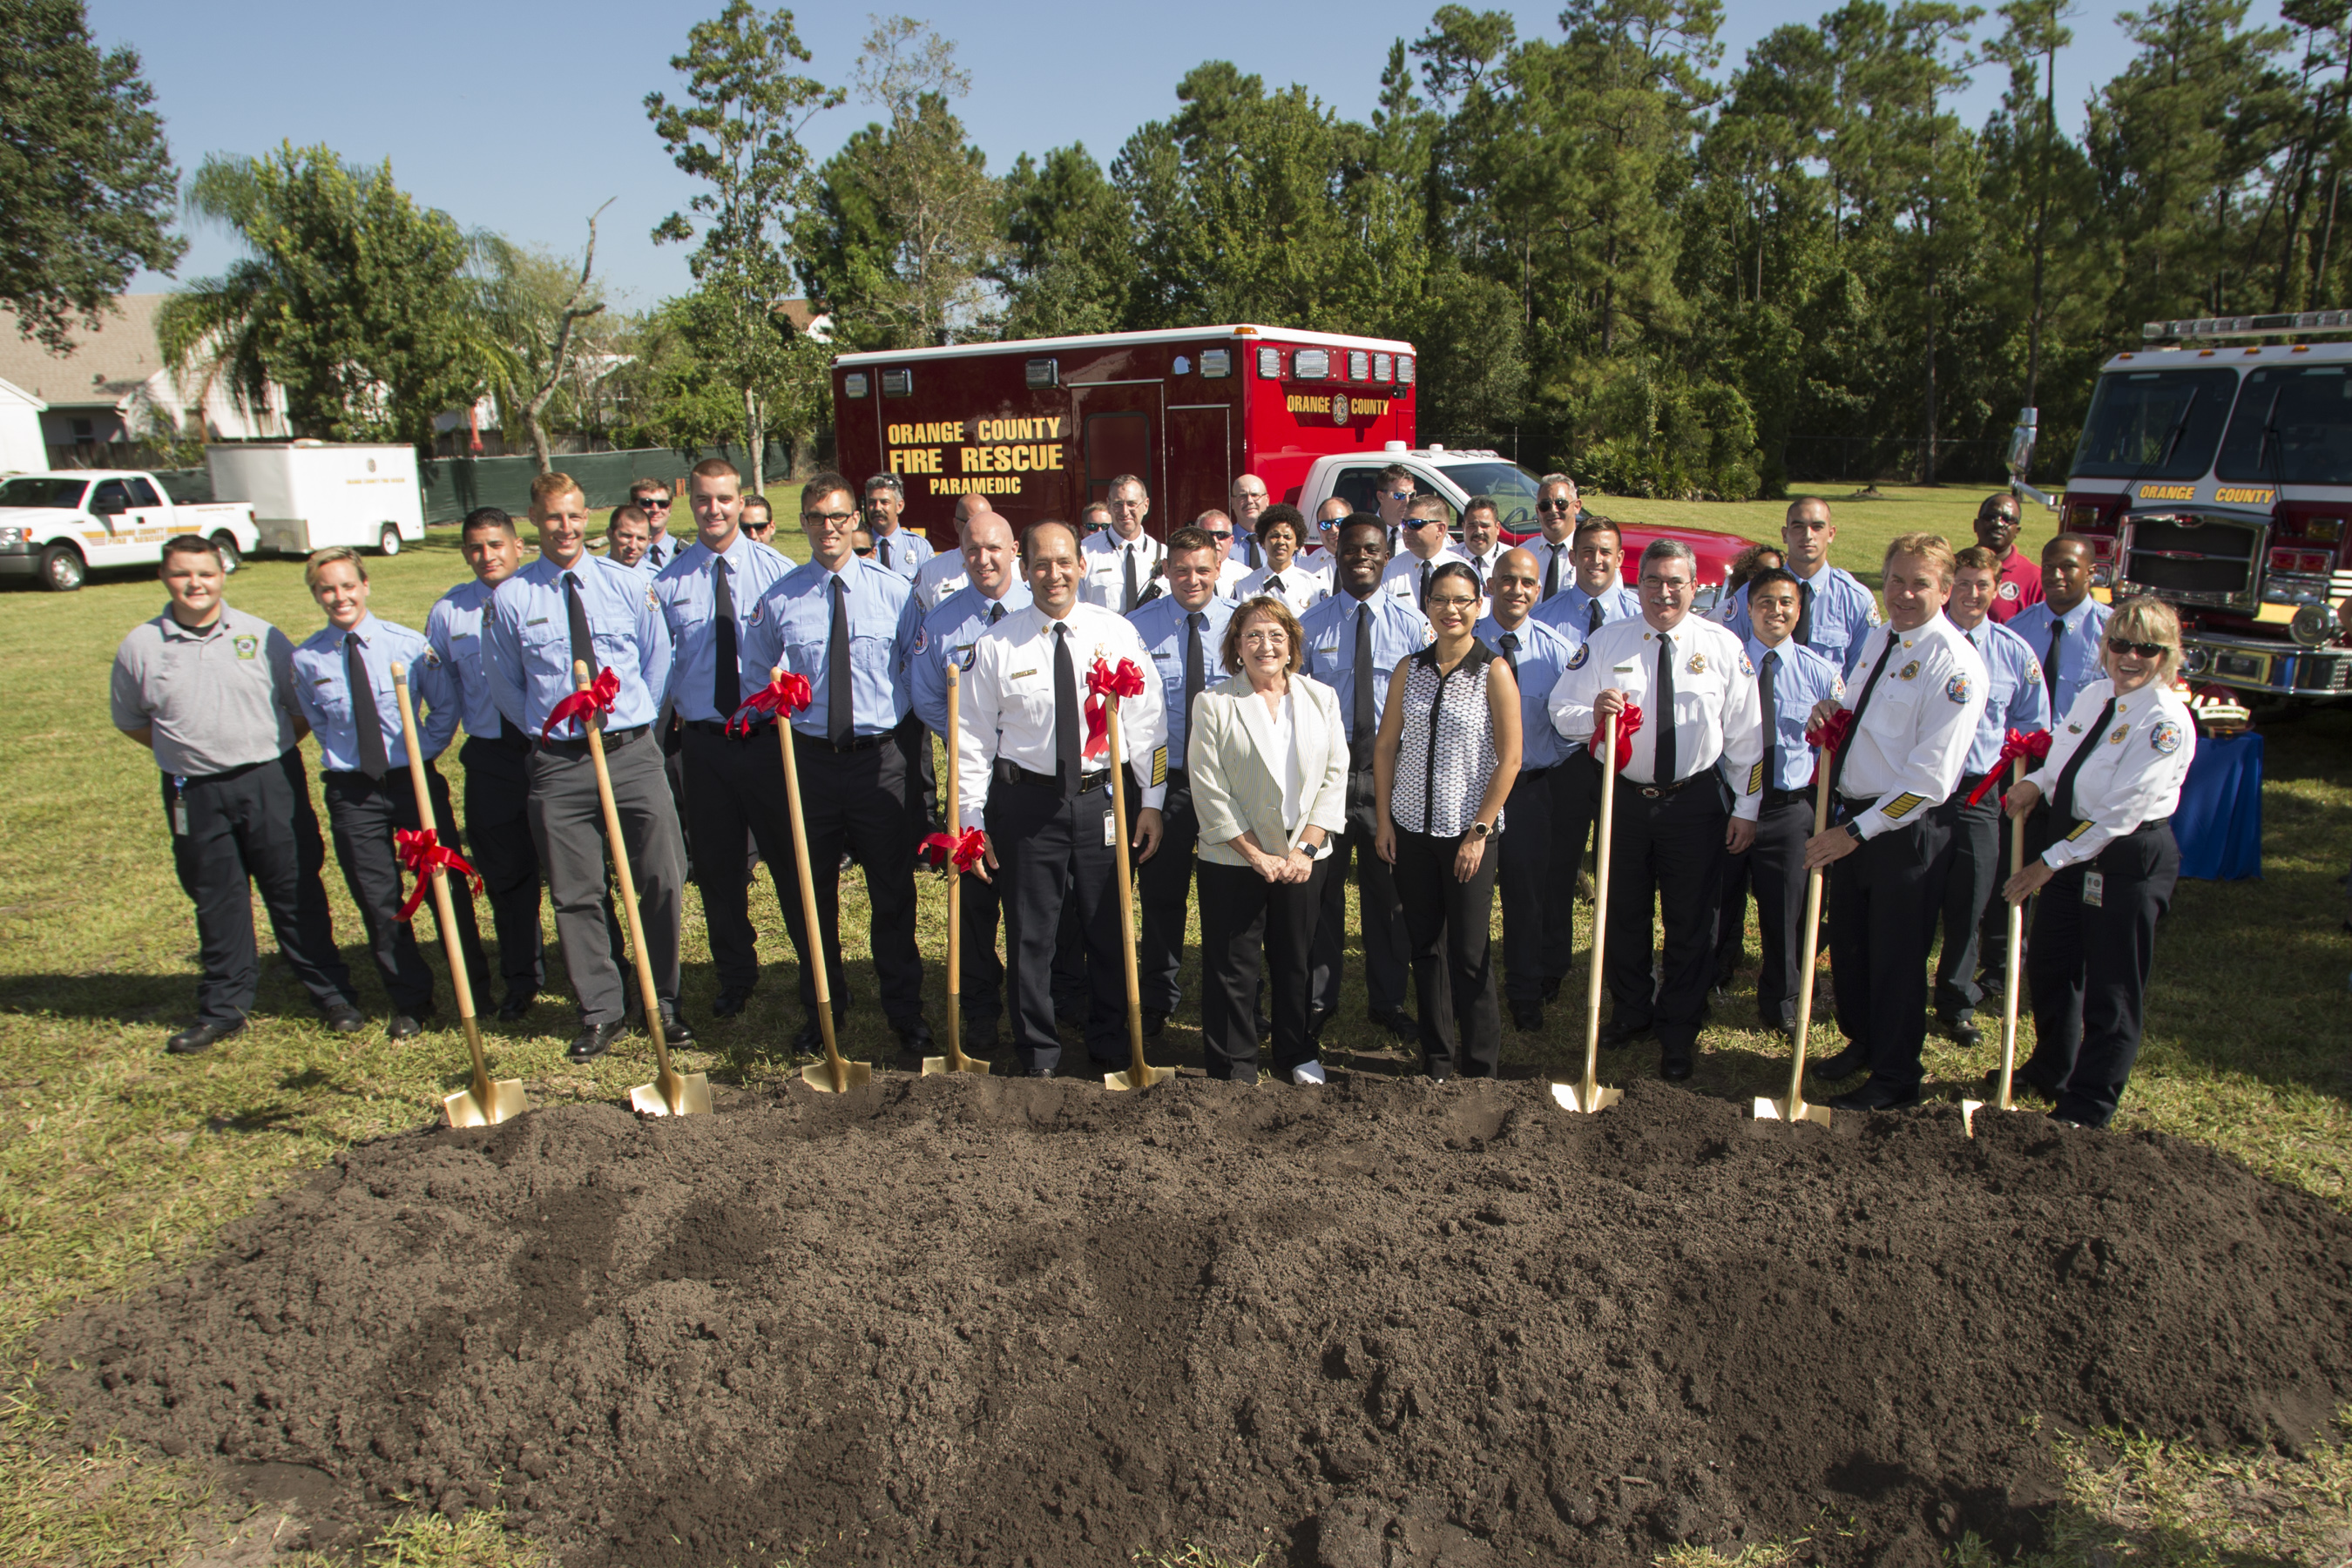 Mayor Jacobs and OCFR at groundbreaking